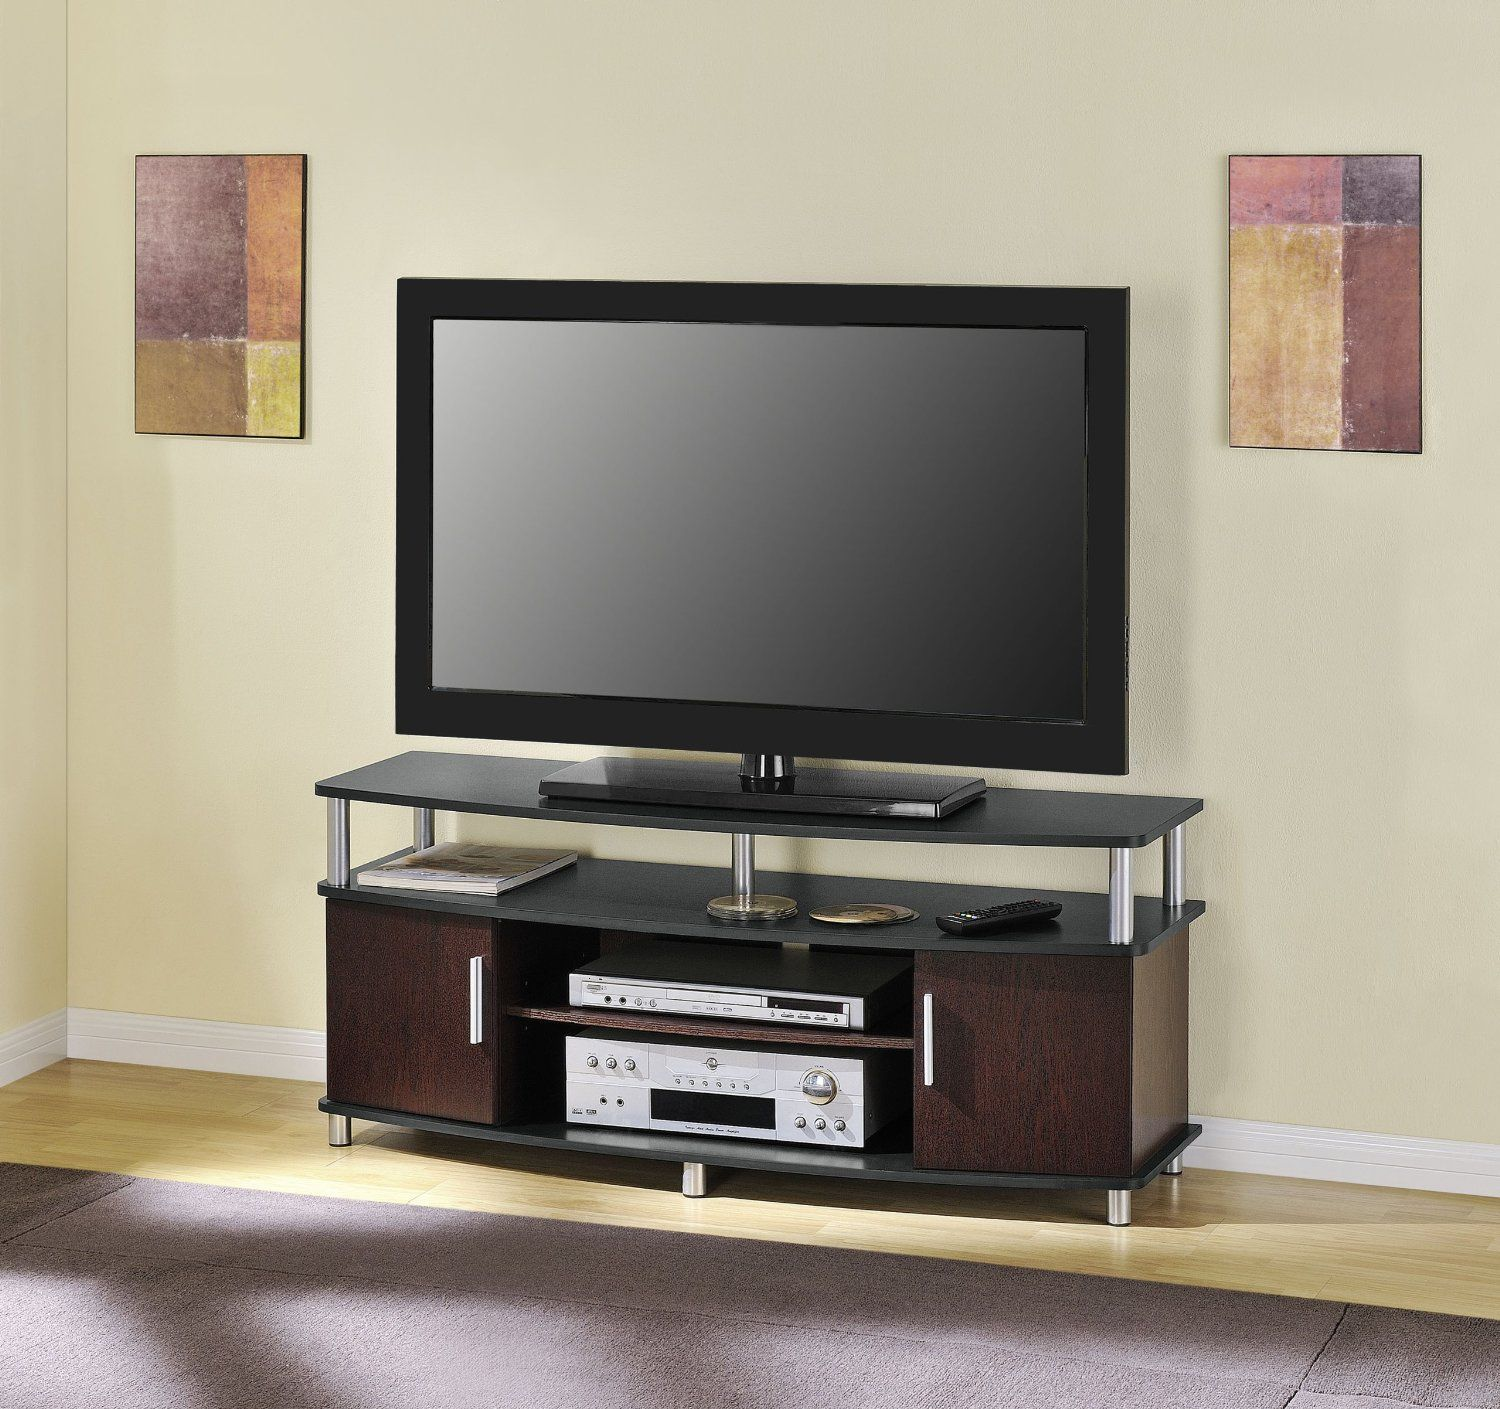 Superbe Altra Furniture Carson 48 Inch TV Stand, Black And Cherry #tv #stand # Furniture #lounge #sitting #room #television #wooden